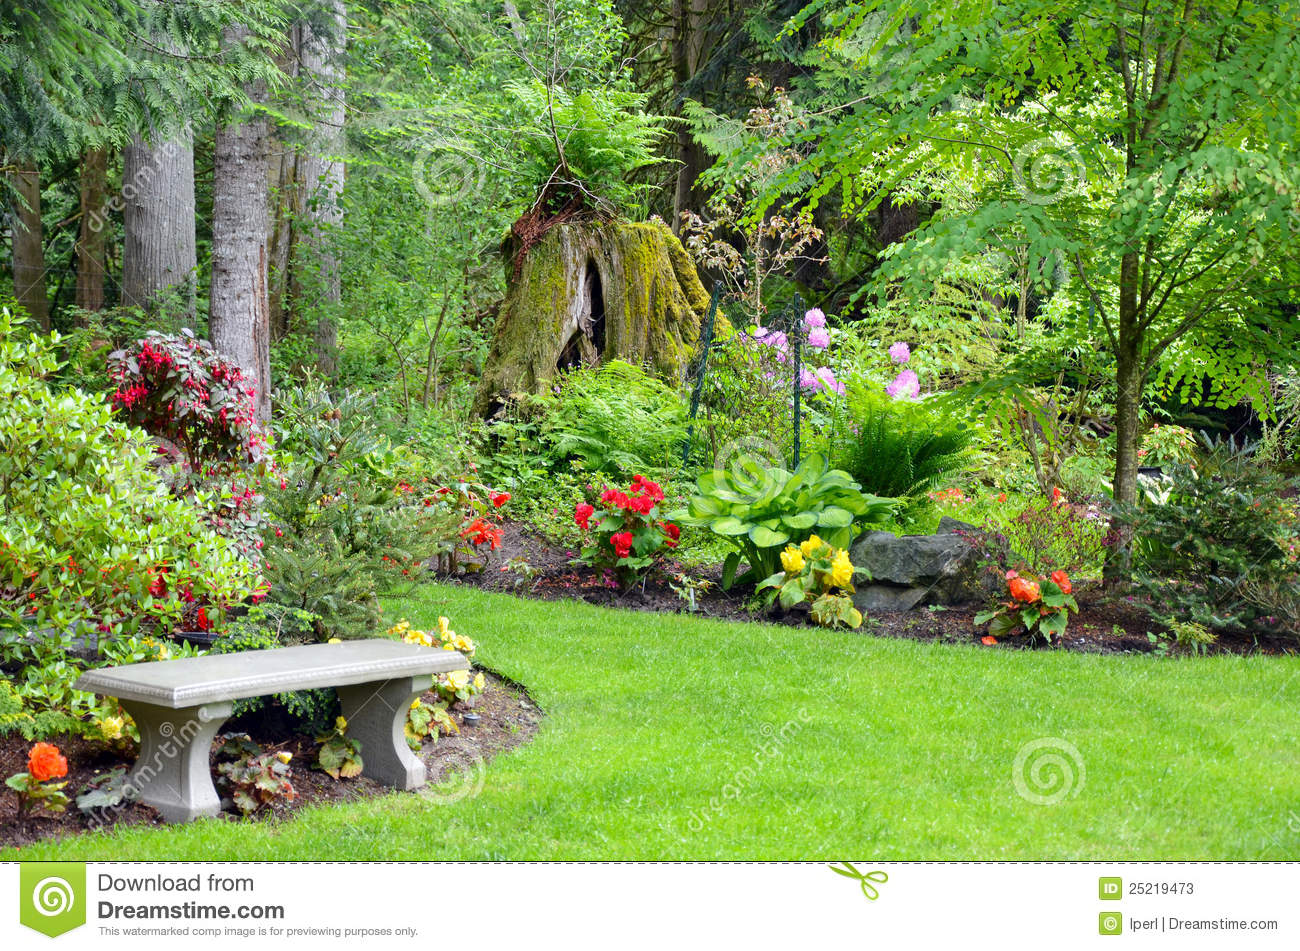 Pacific northwest garden stock image image of foliage for Gardening and landscaping